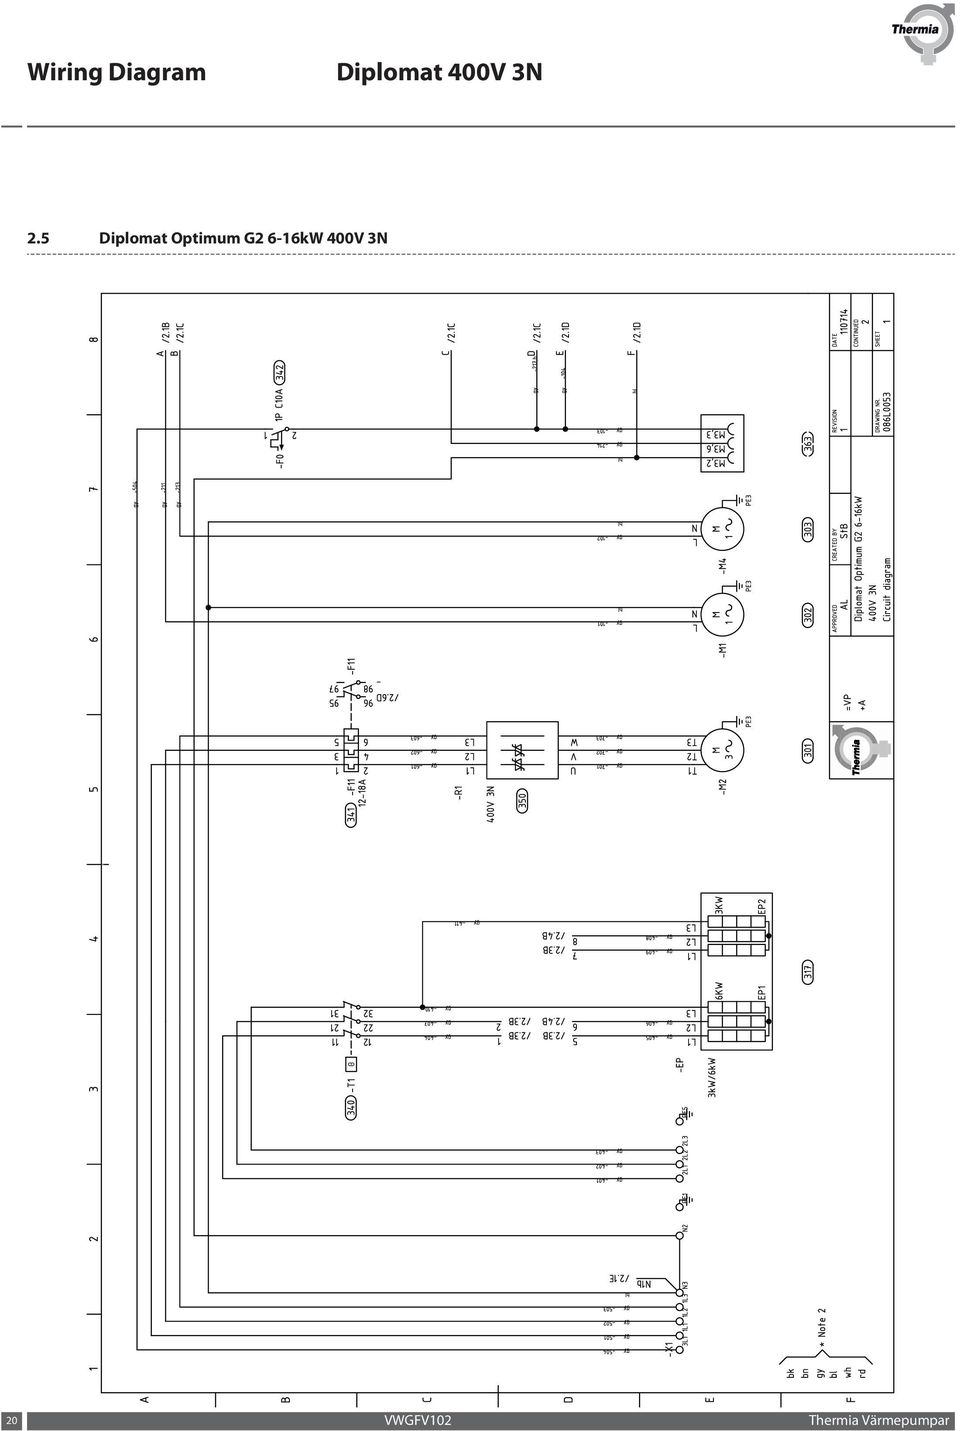 Wiring Diagram Diplomat 400v 3n Pdf 720 Console Free Download Diagrams Pictures 20